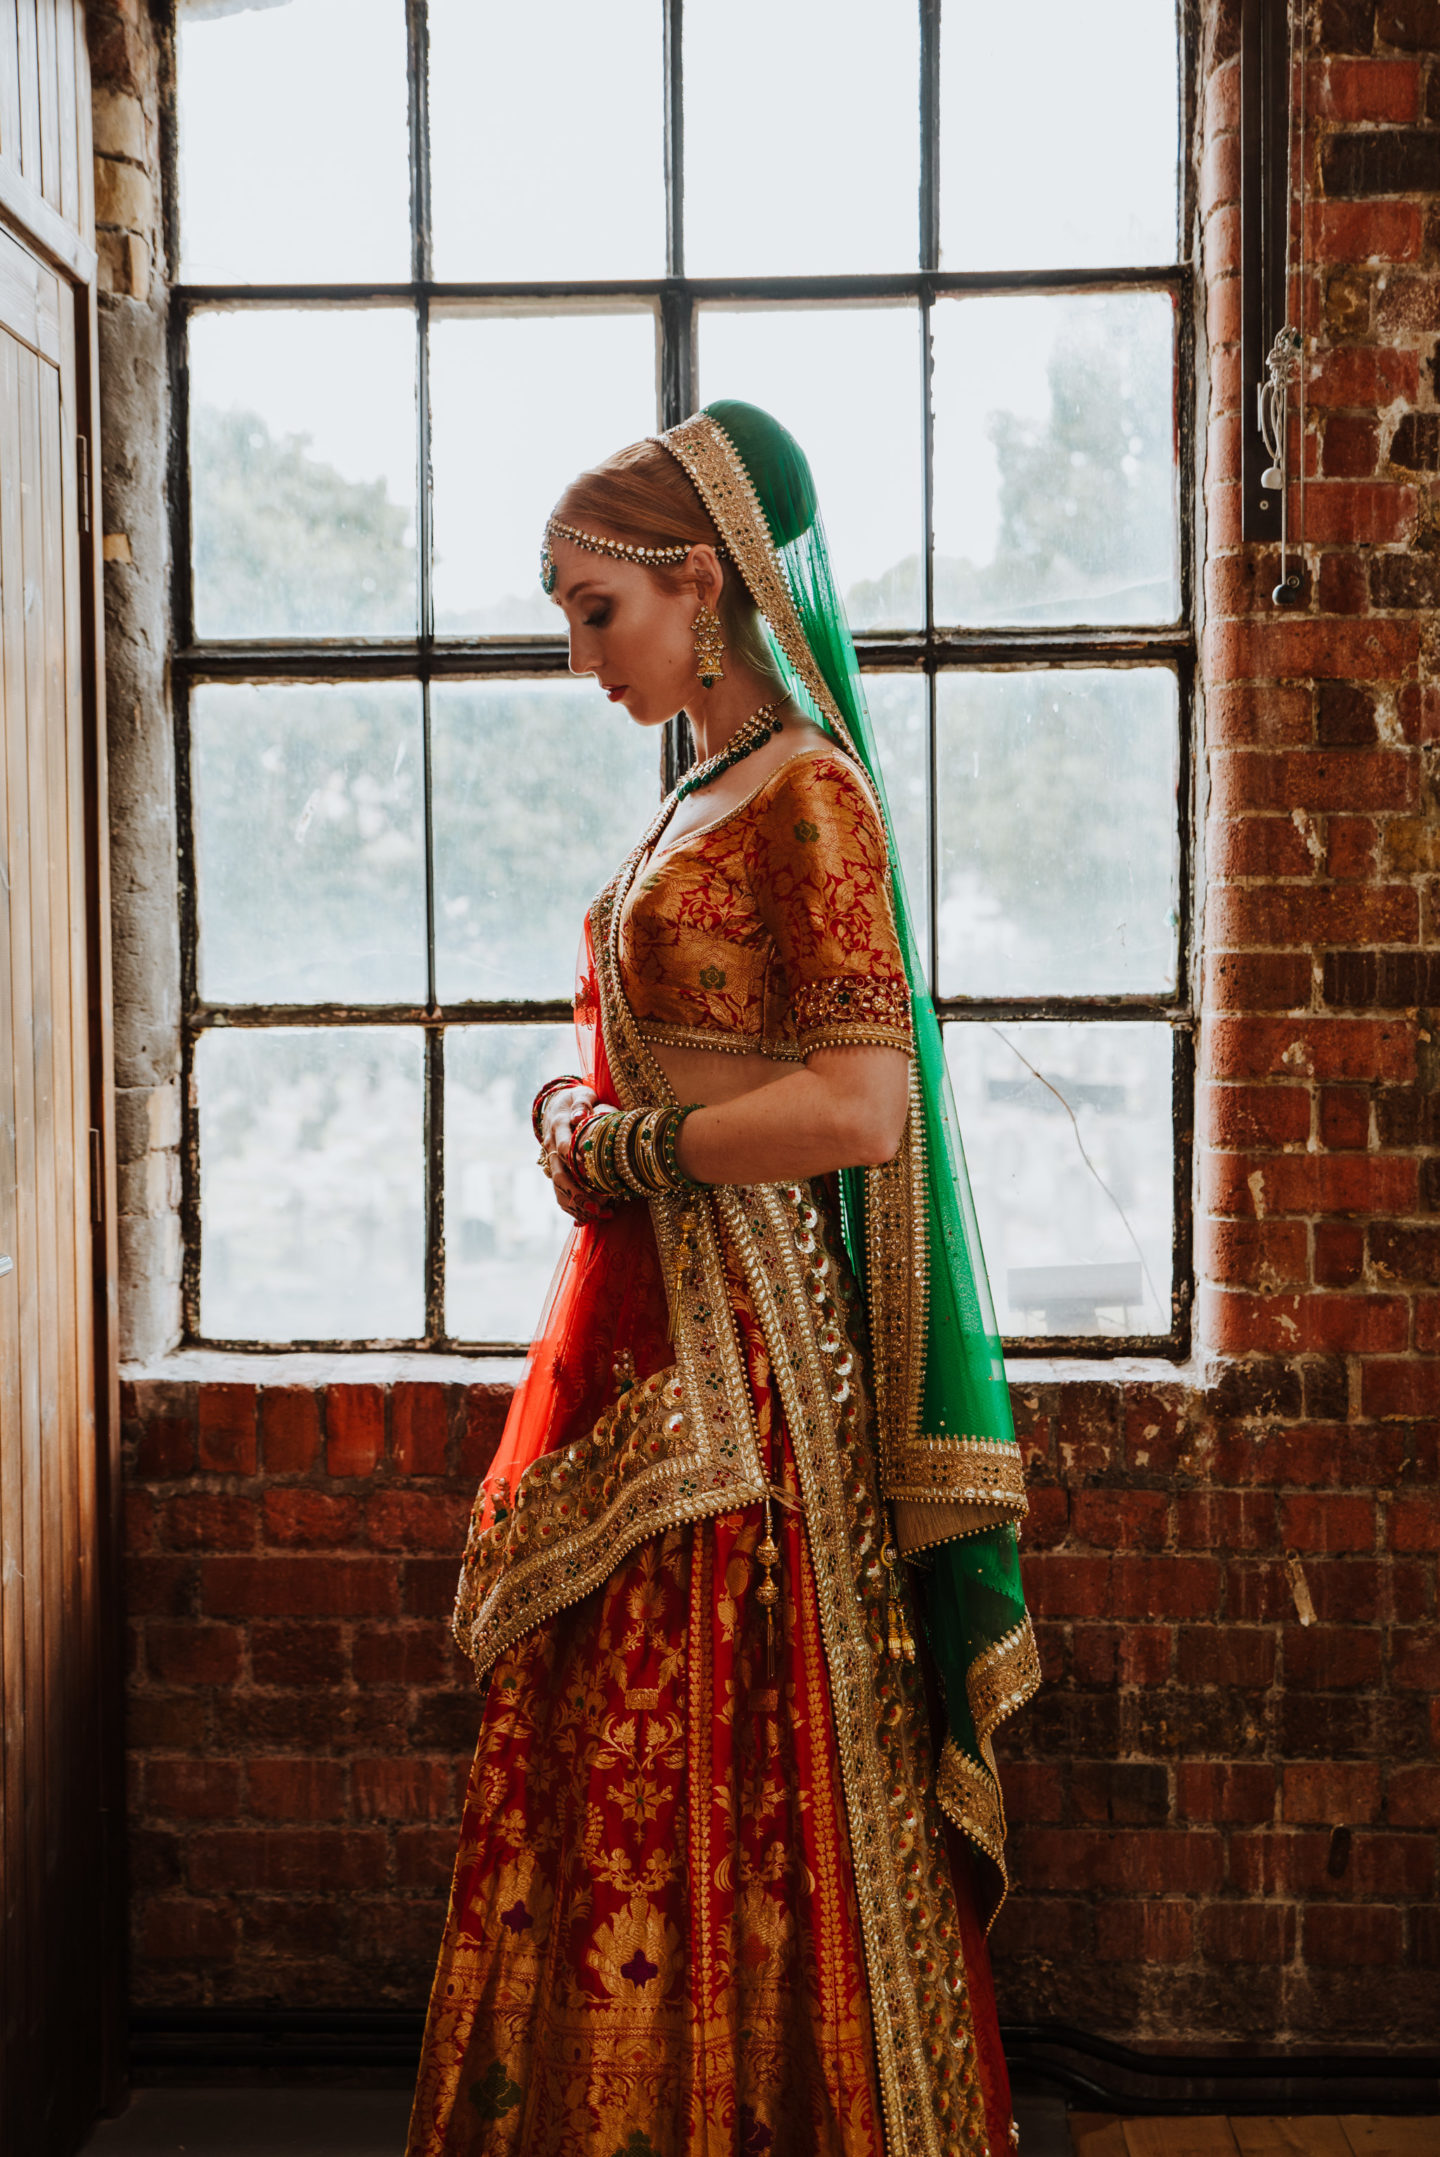 Multicultural Two Day Wedding With Traditional Indian Dress In West London